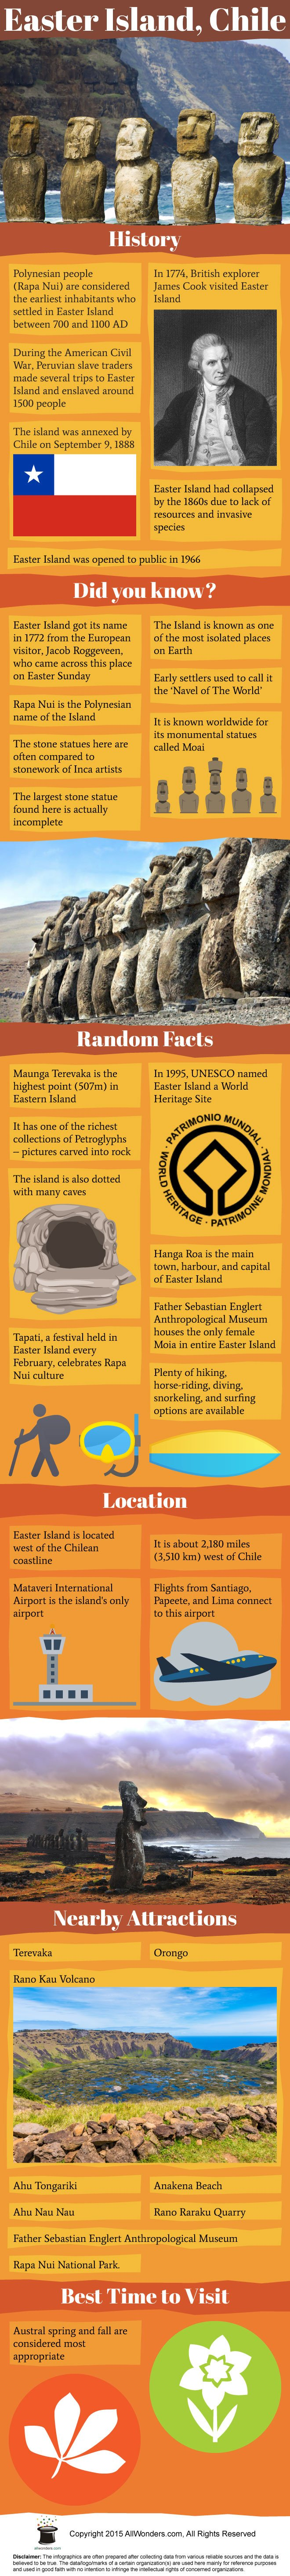 Easter Island Infographic